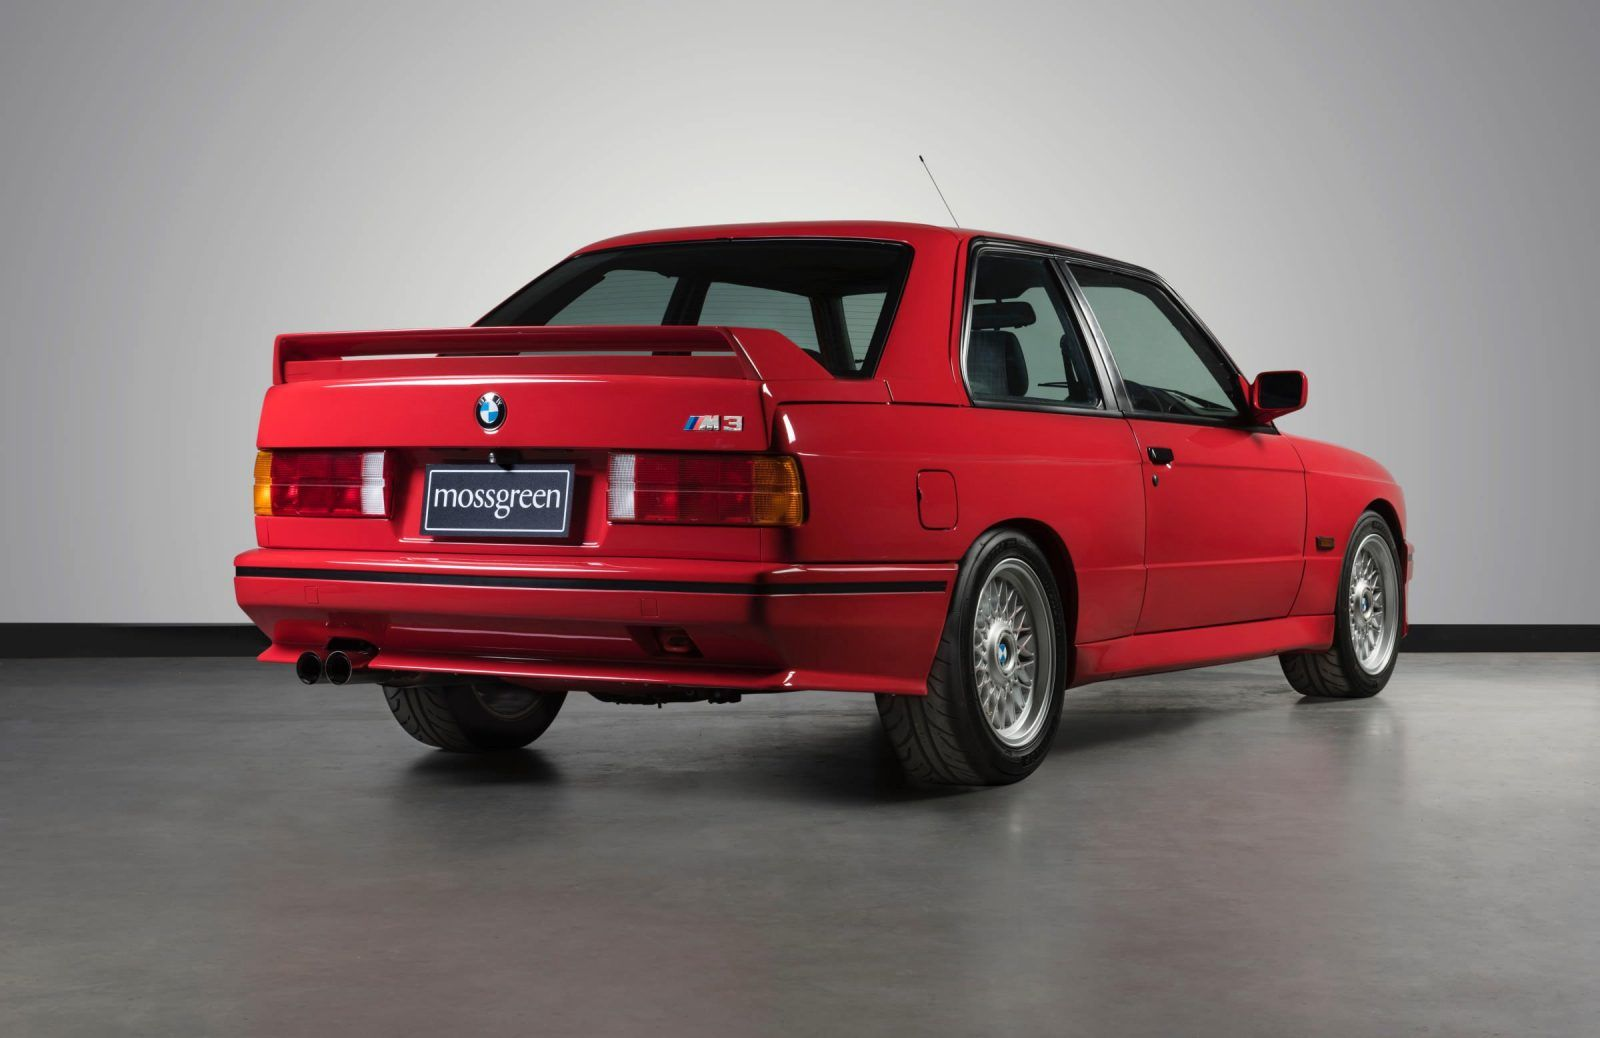 1988 Bmw E30 M3 Evo 2 With Images Bmw E30 Bmw E30 M3 Bmw